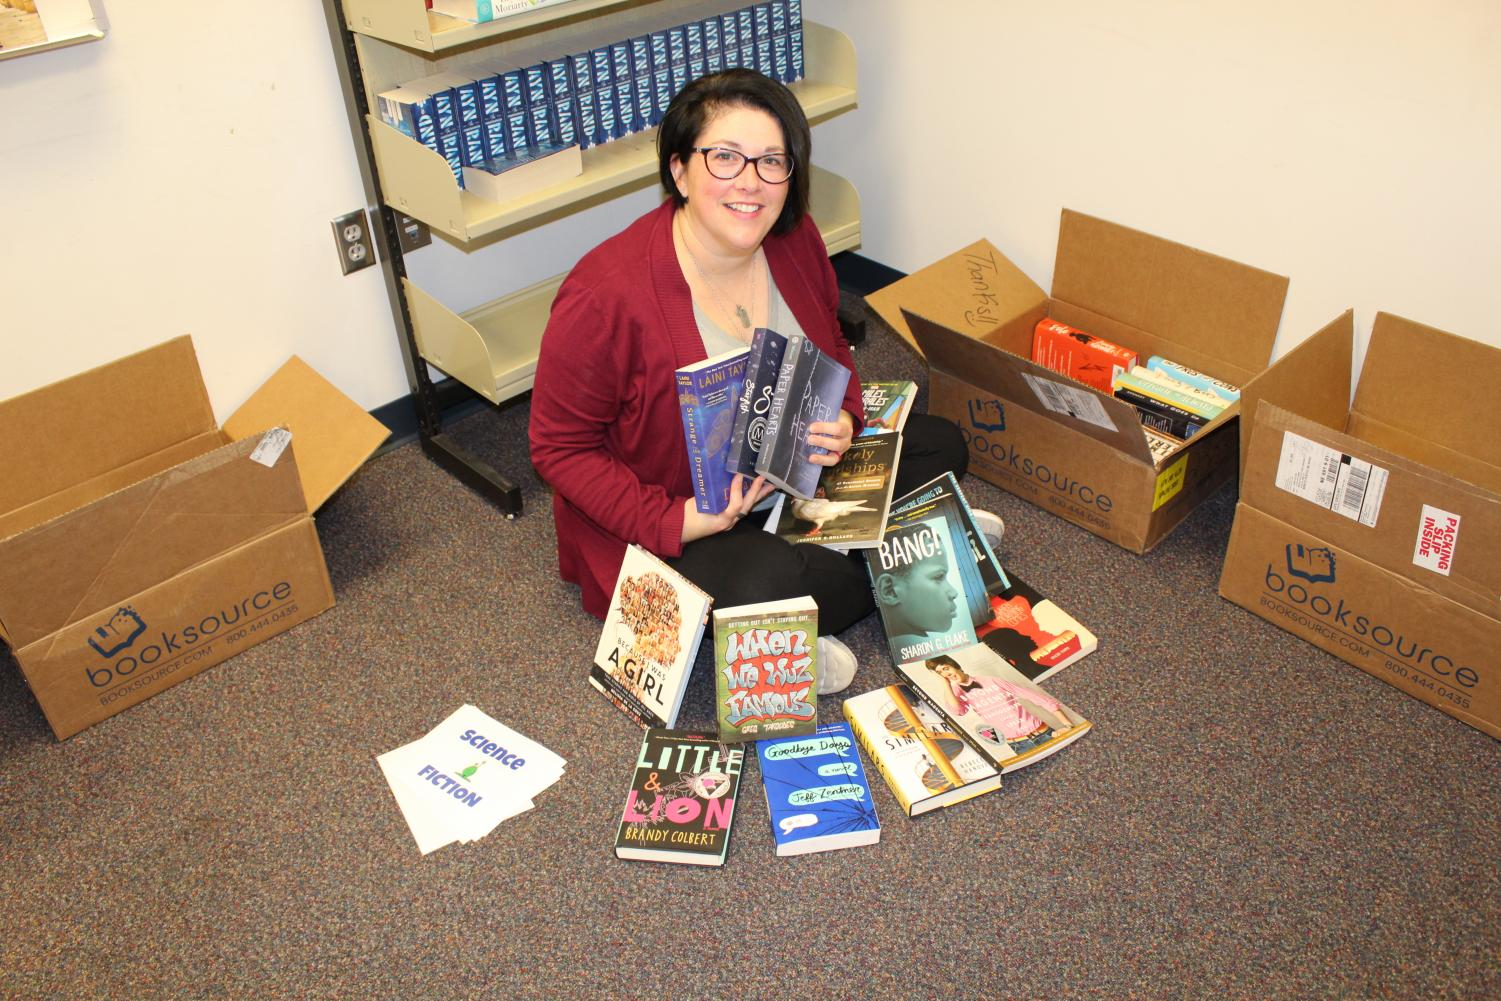 Allen's grant was enough to purchase 250 books.